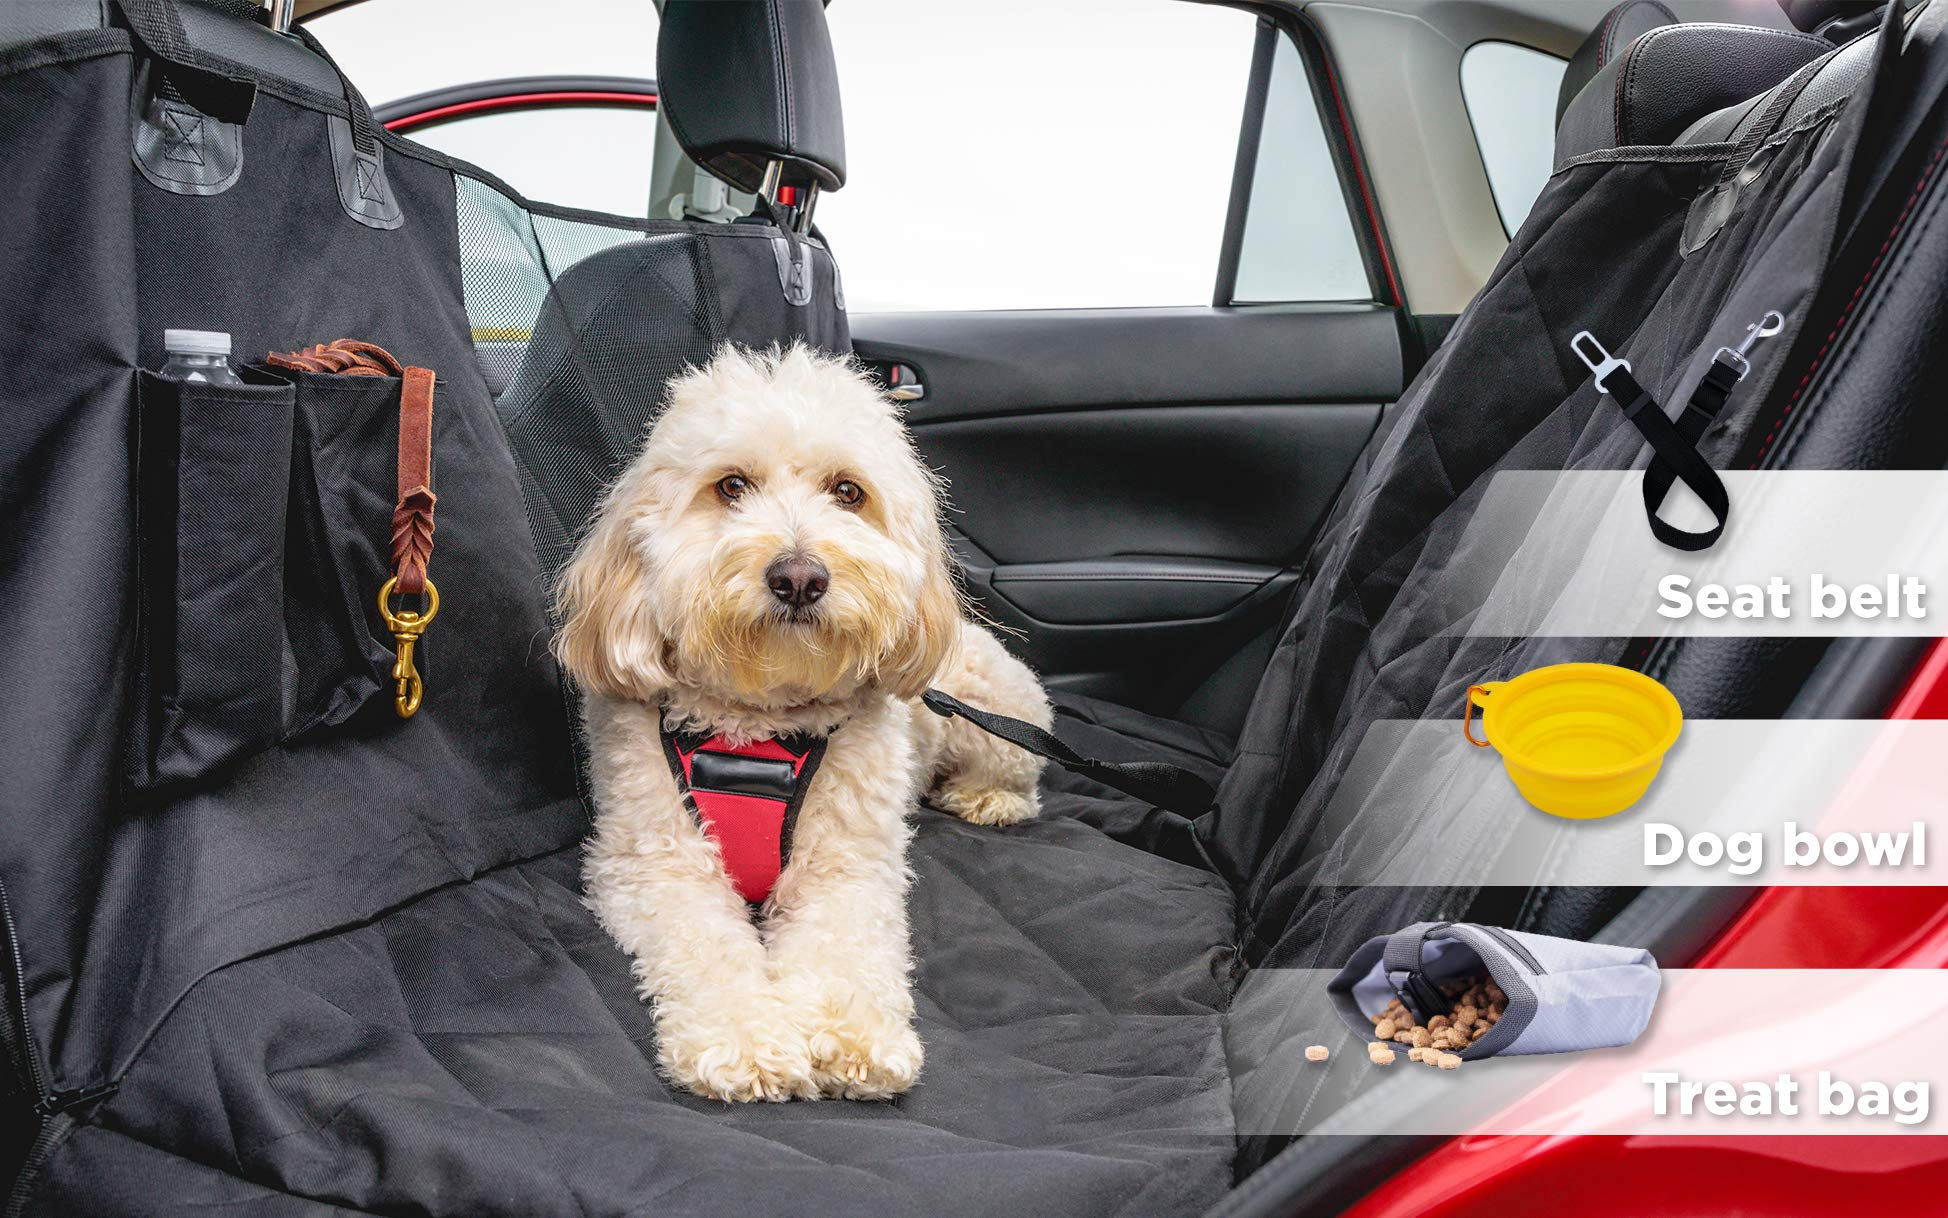 Vibes Dog Supply Luxury Pet Seat Cover - Bonus Seat Belt & Collapsible Dog Bowl & Treat Bag for Trucks, SUV, and Cars - Non Slip Backing, Waterproof